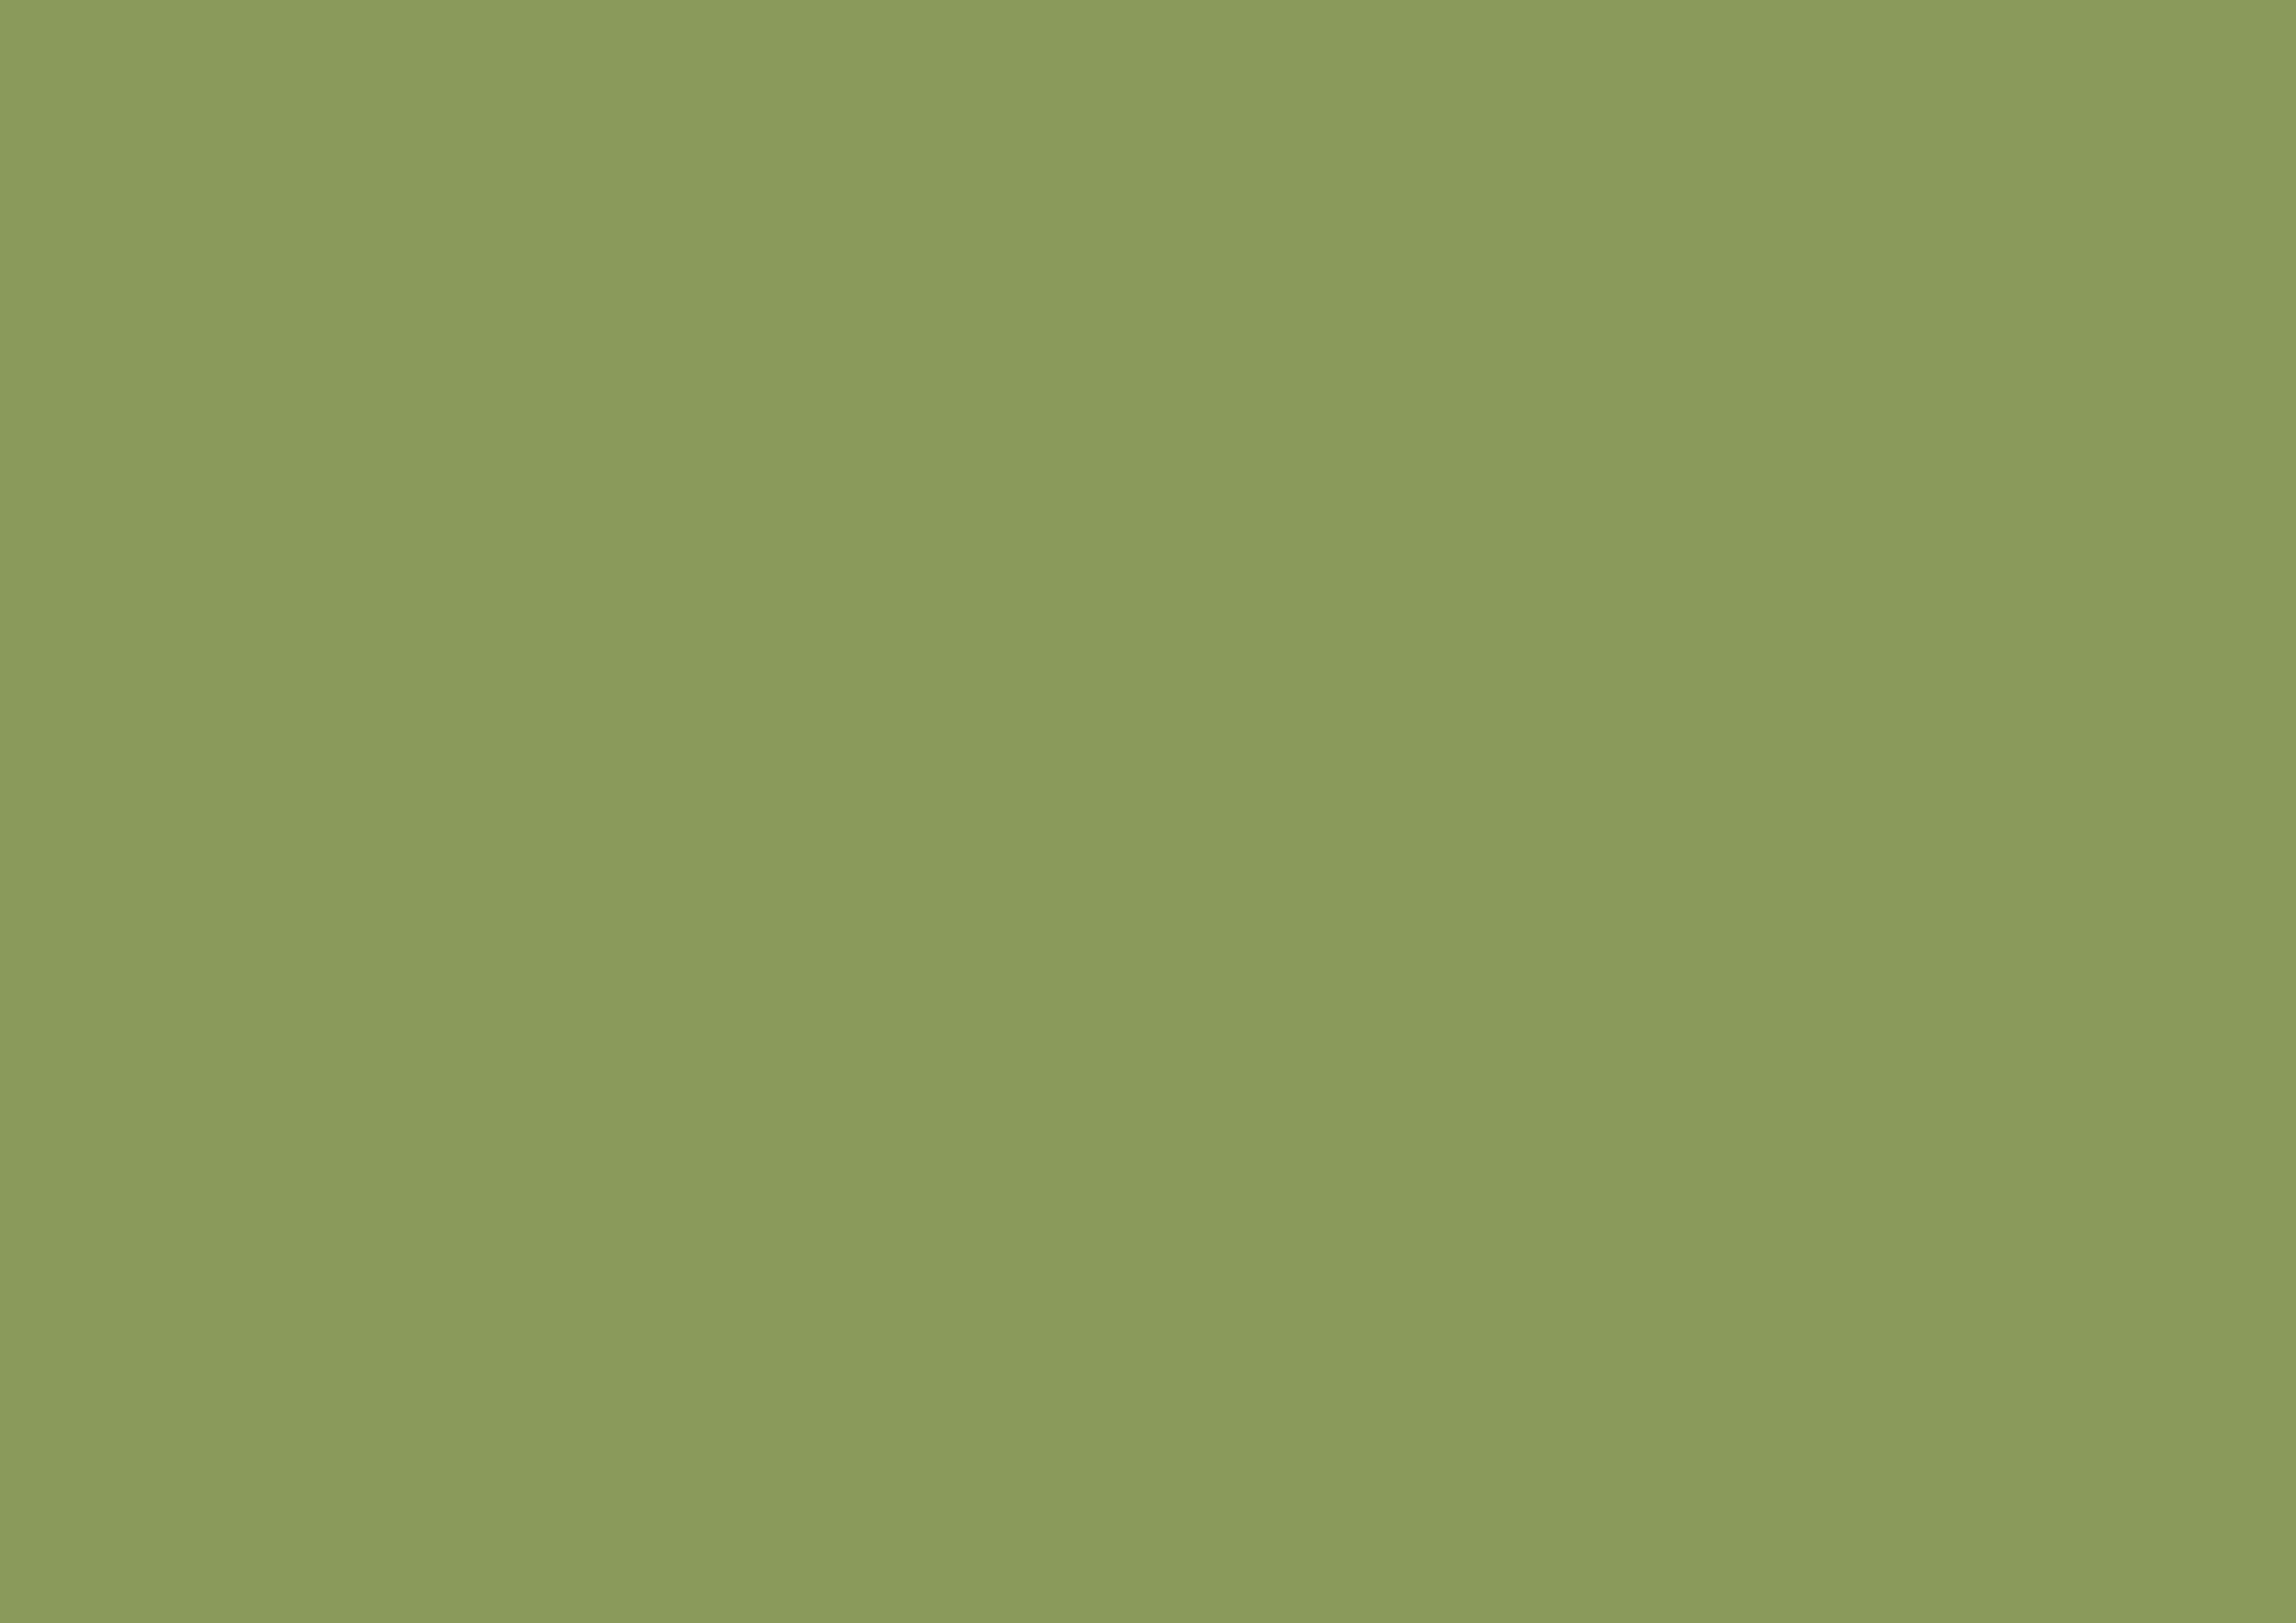 3508x2480 Moss Green Solid Color Background